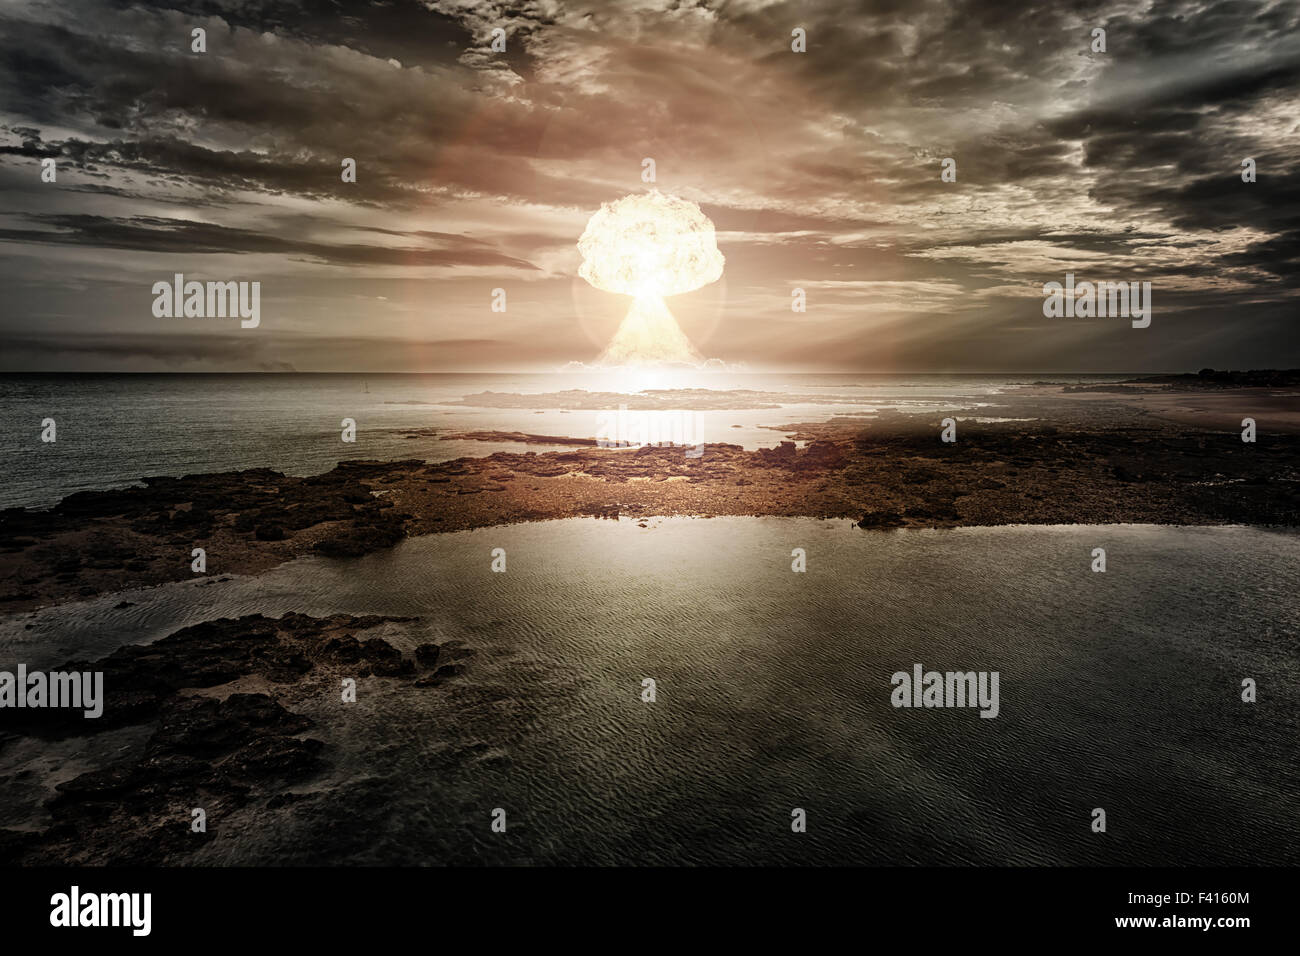 nuclear bomb explosion - Stock Image